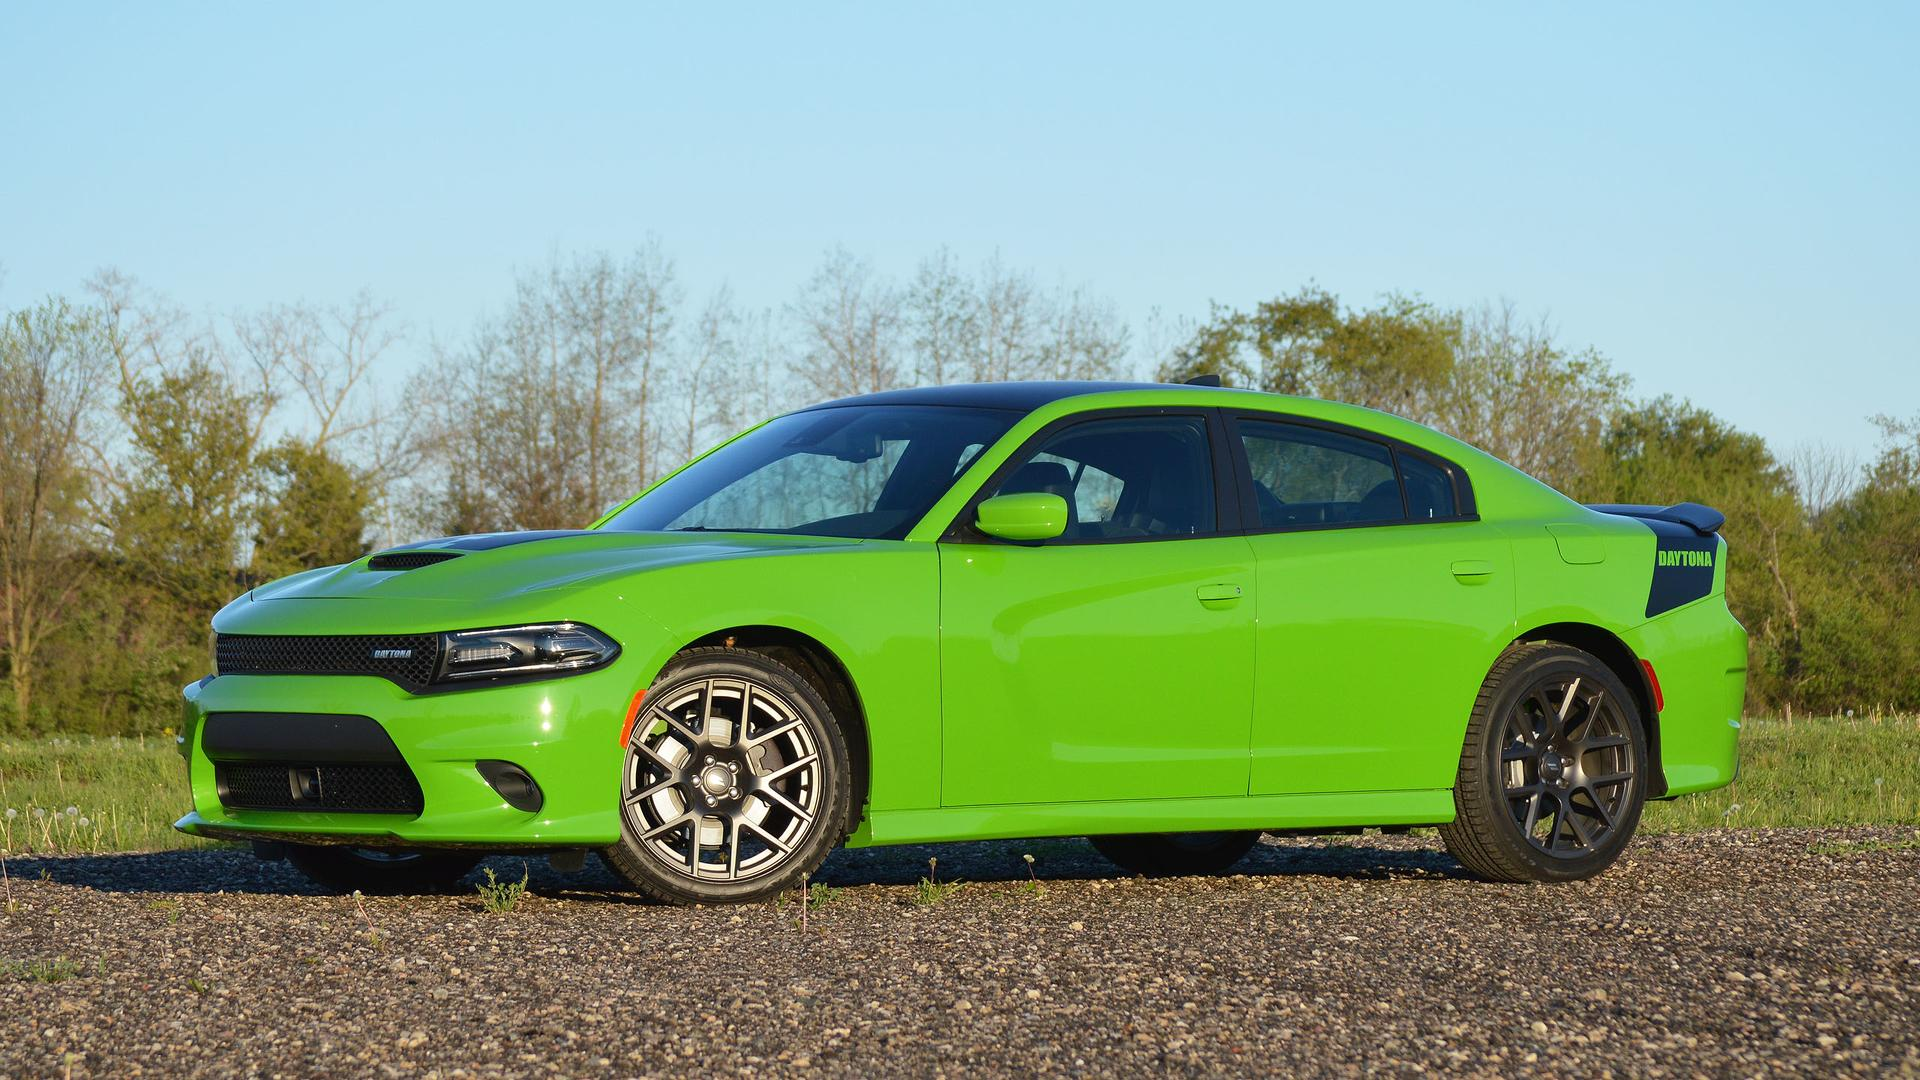 2018 Dodge Charger Rallye >> 2017 Dodge Charger Daytona Review: Family Muscle